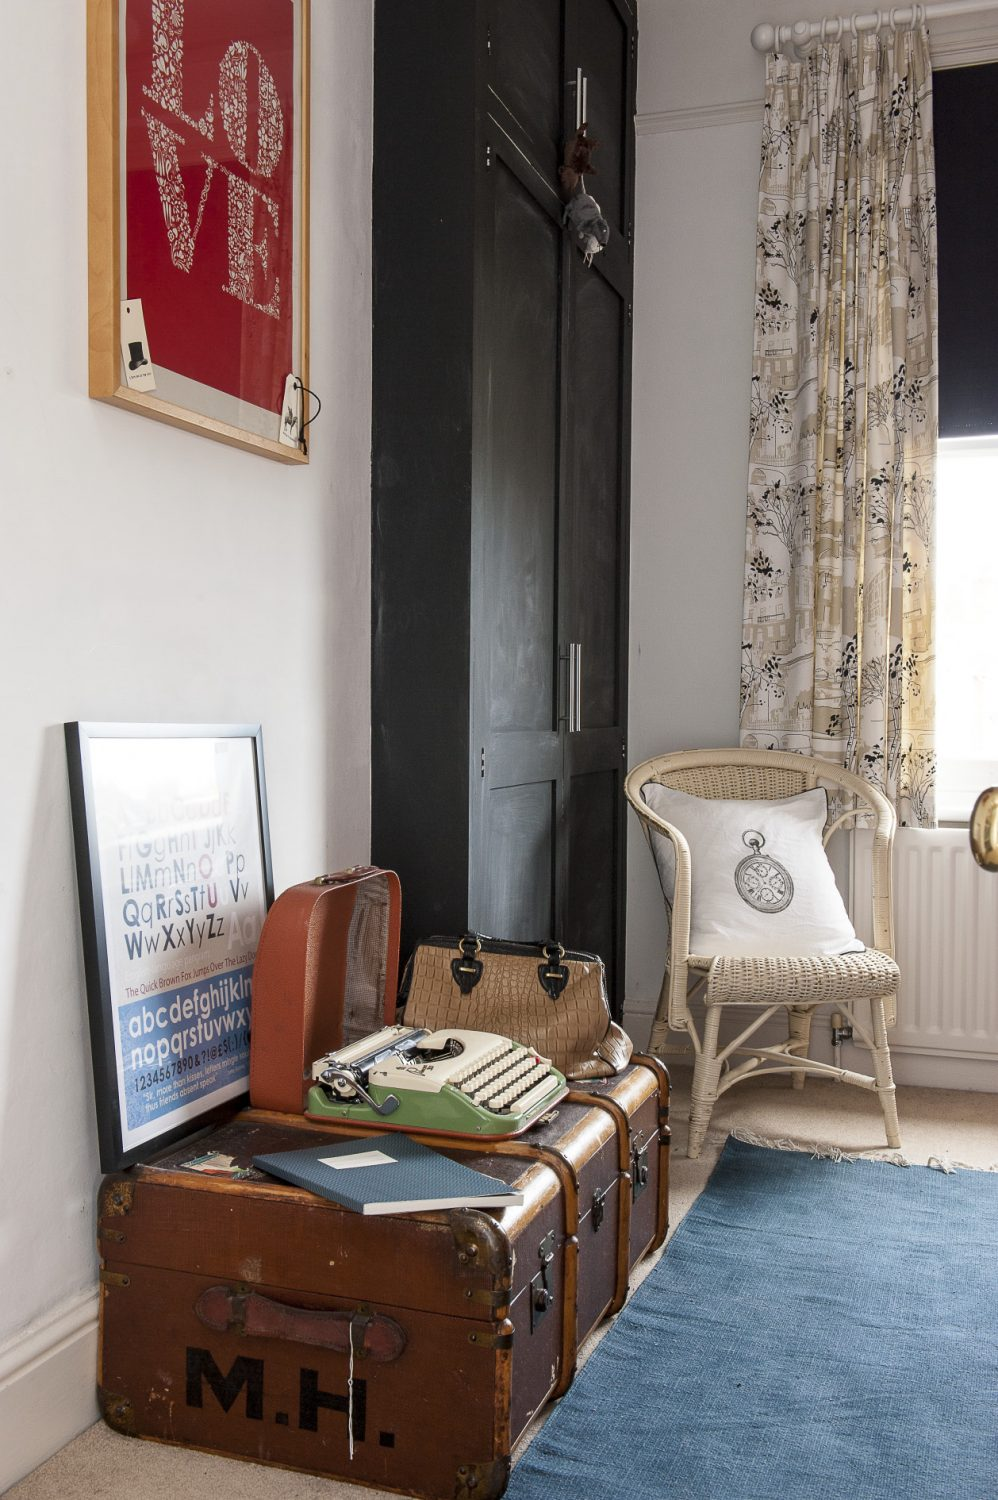 Pride of place in Phoebe's room is an old leather trunk topped with a classic 1960s Princess 300 portable typewriter made by Keller and Knappich that she specifically asked for as a Christmas present